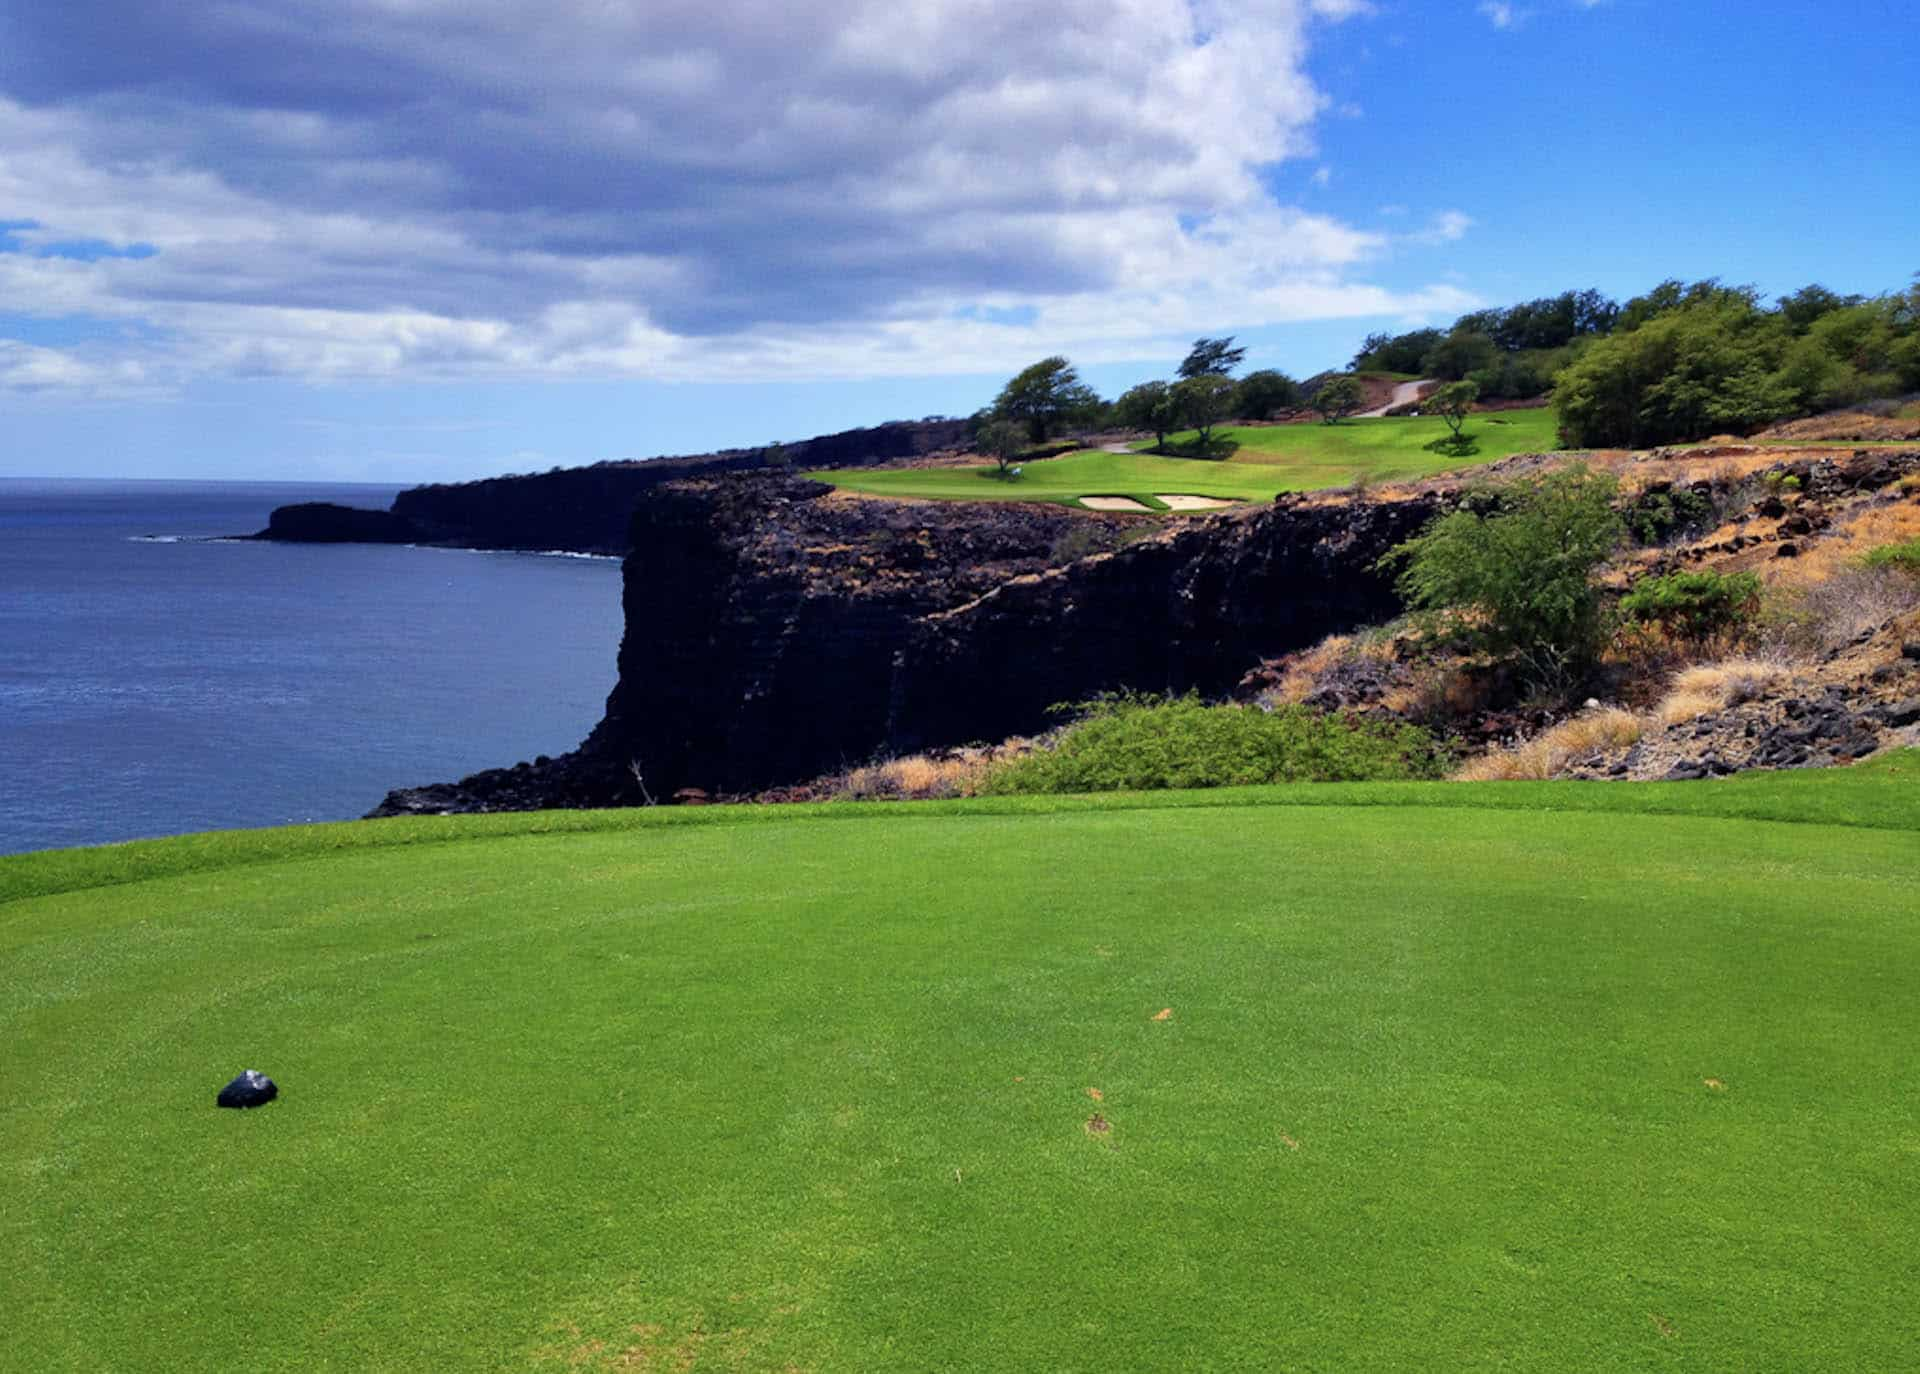 things to do on lanai - golfing